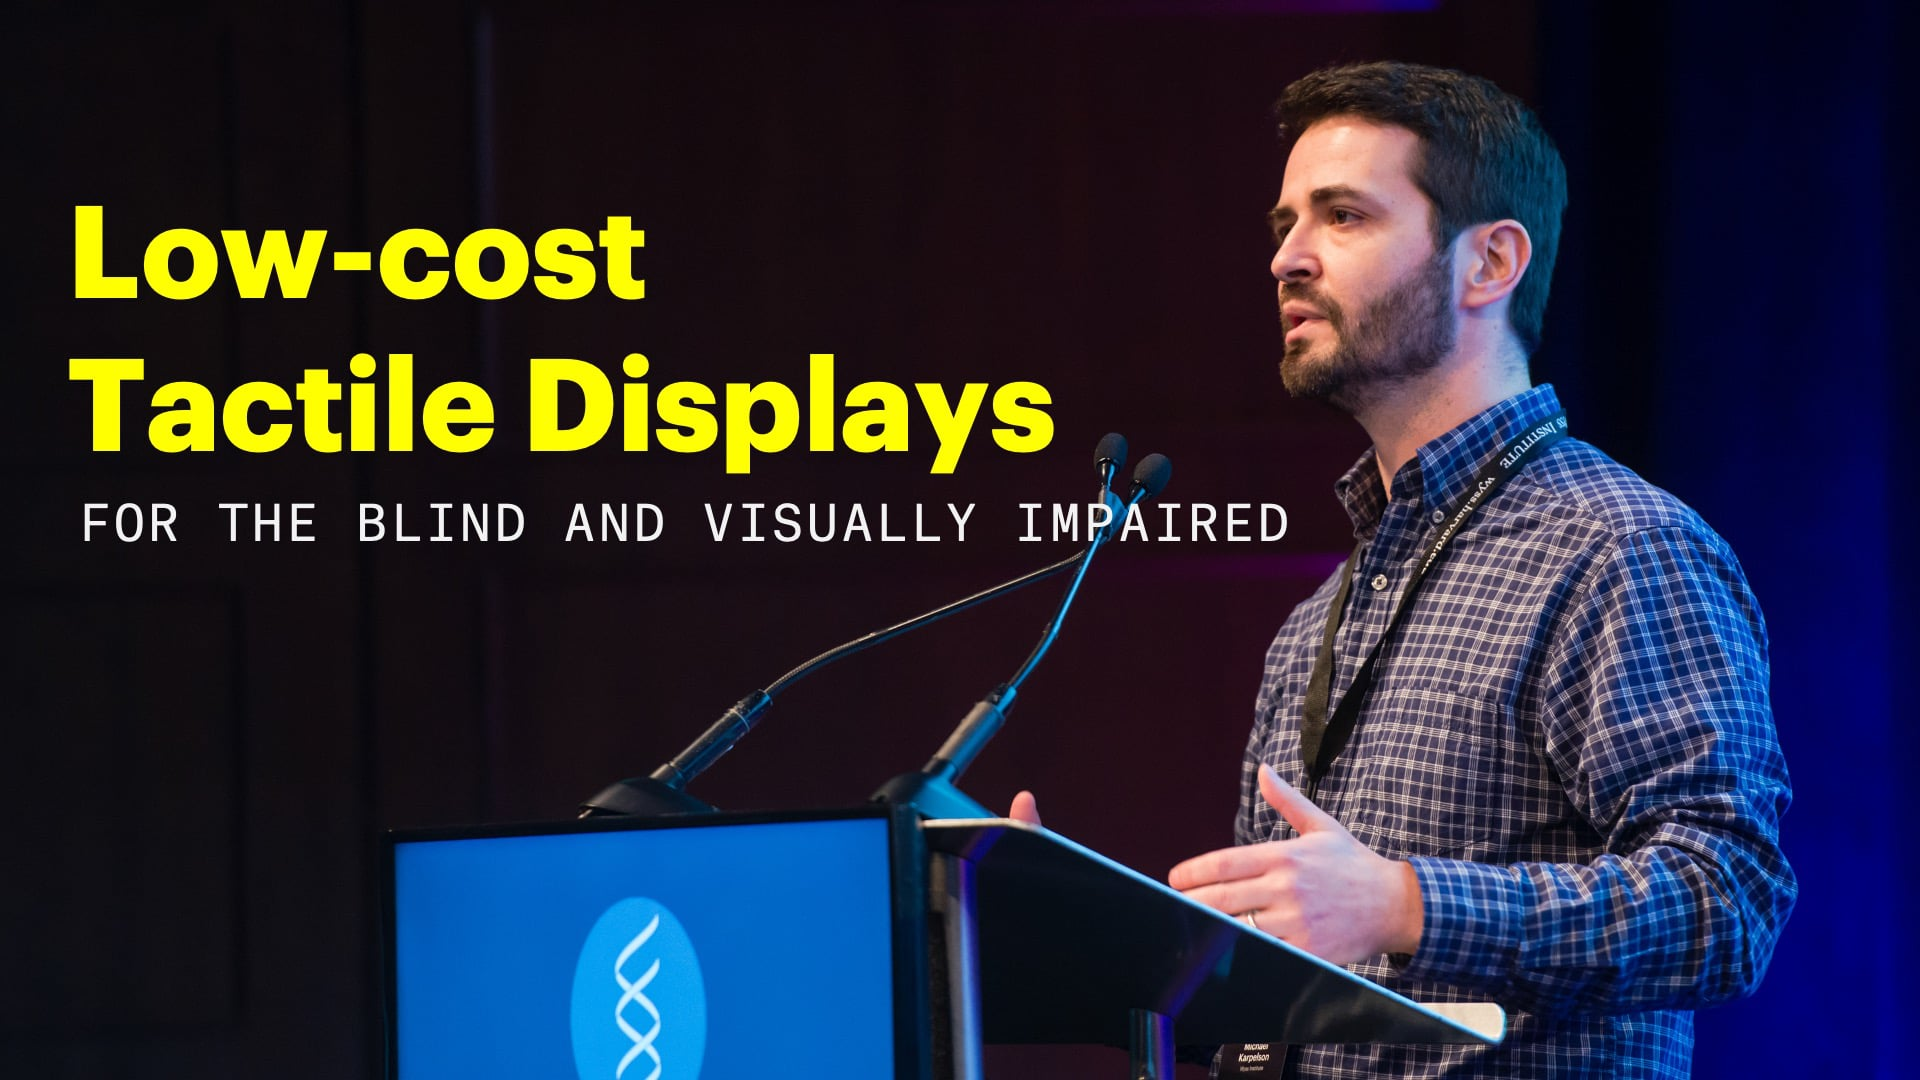 Low-cost Tactile Displays for the Blind and Visually Impaired